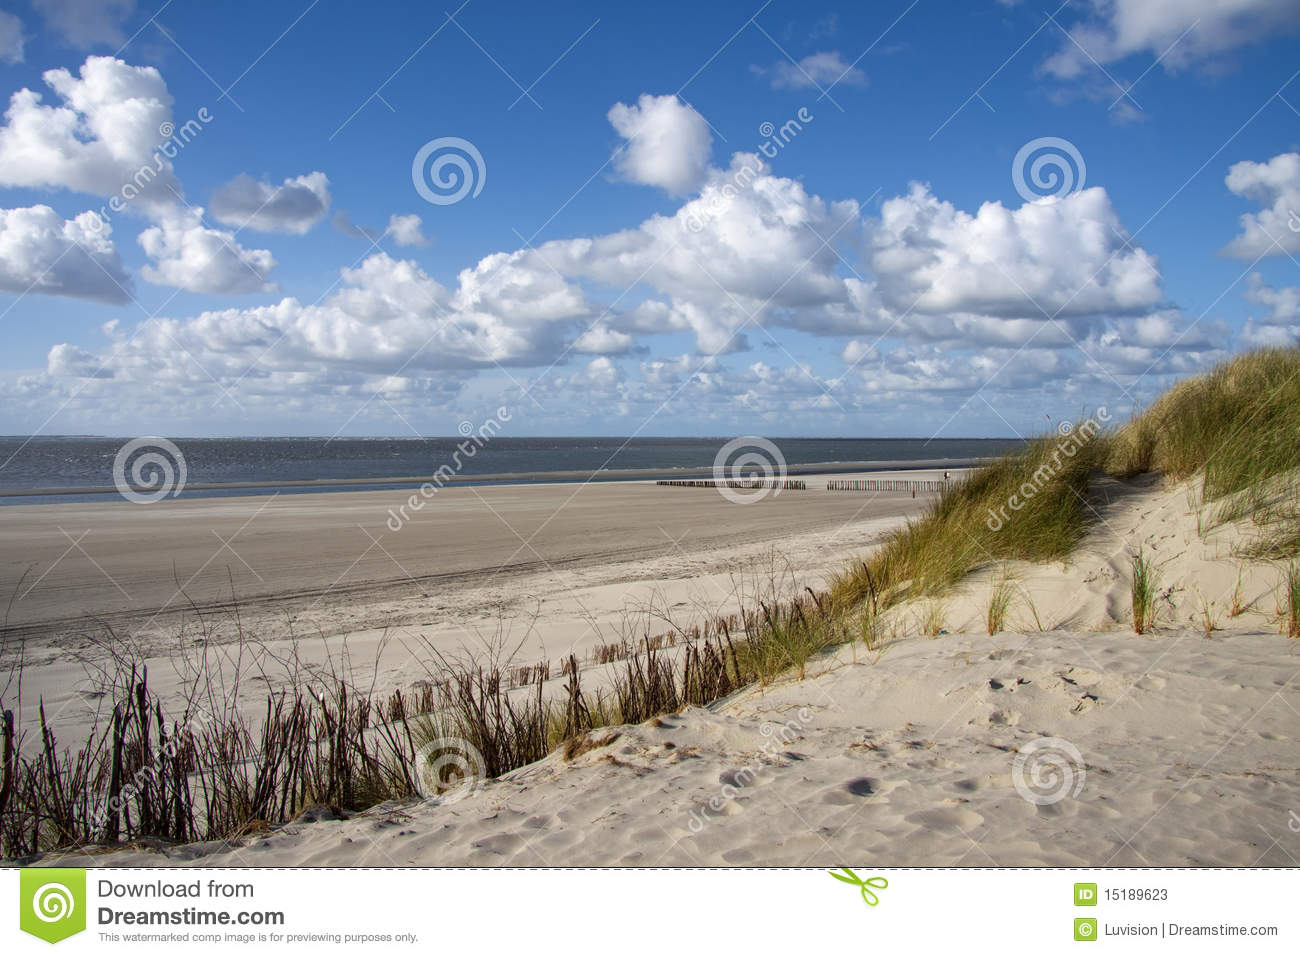 Sonniger Tag in Ostsee